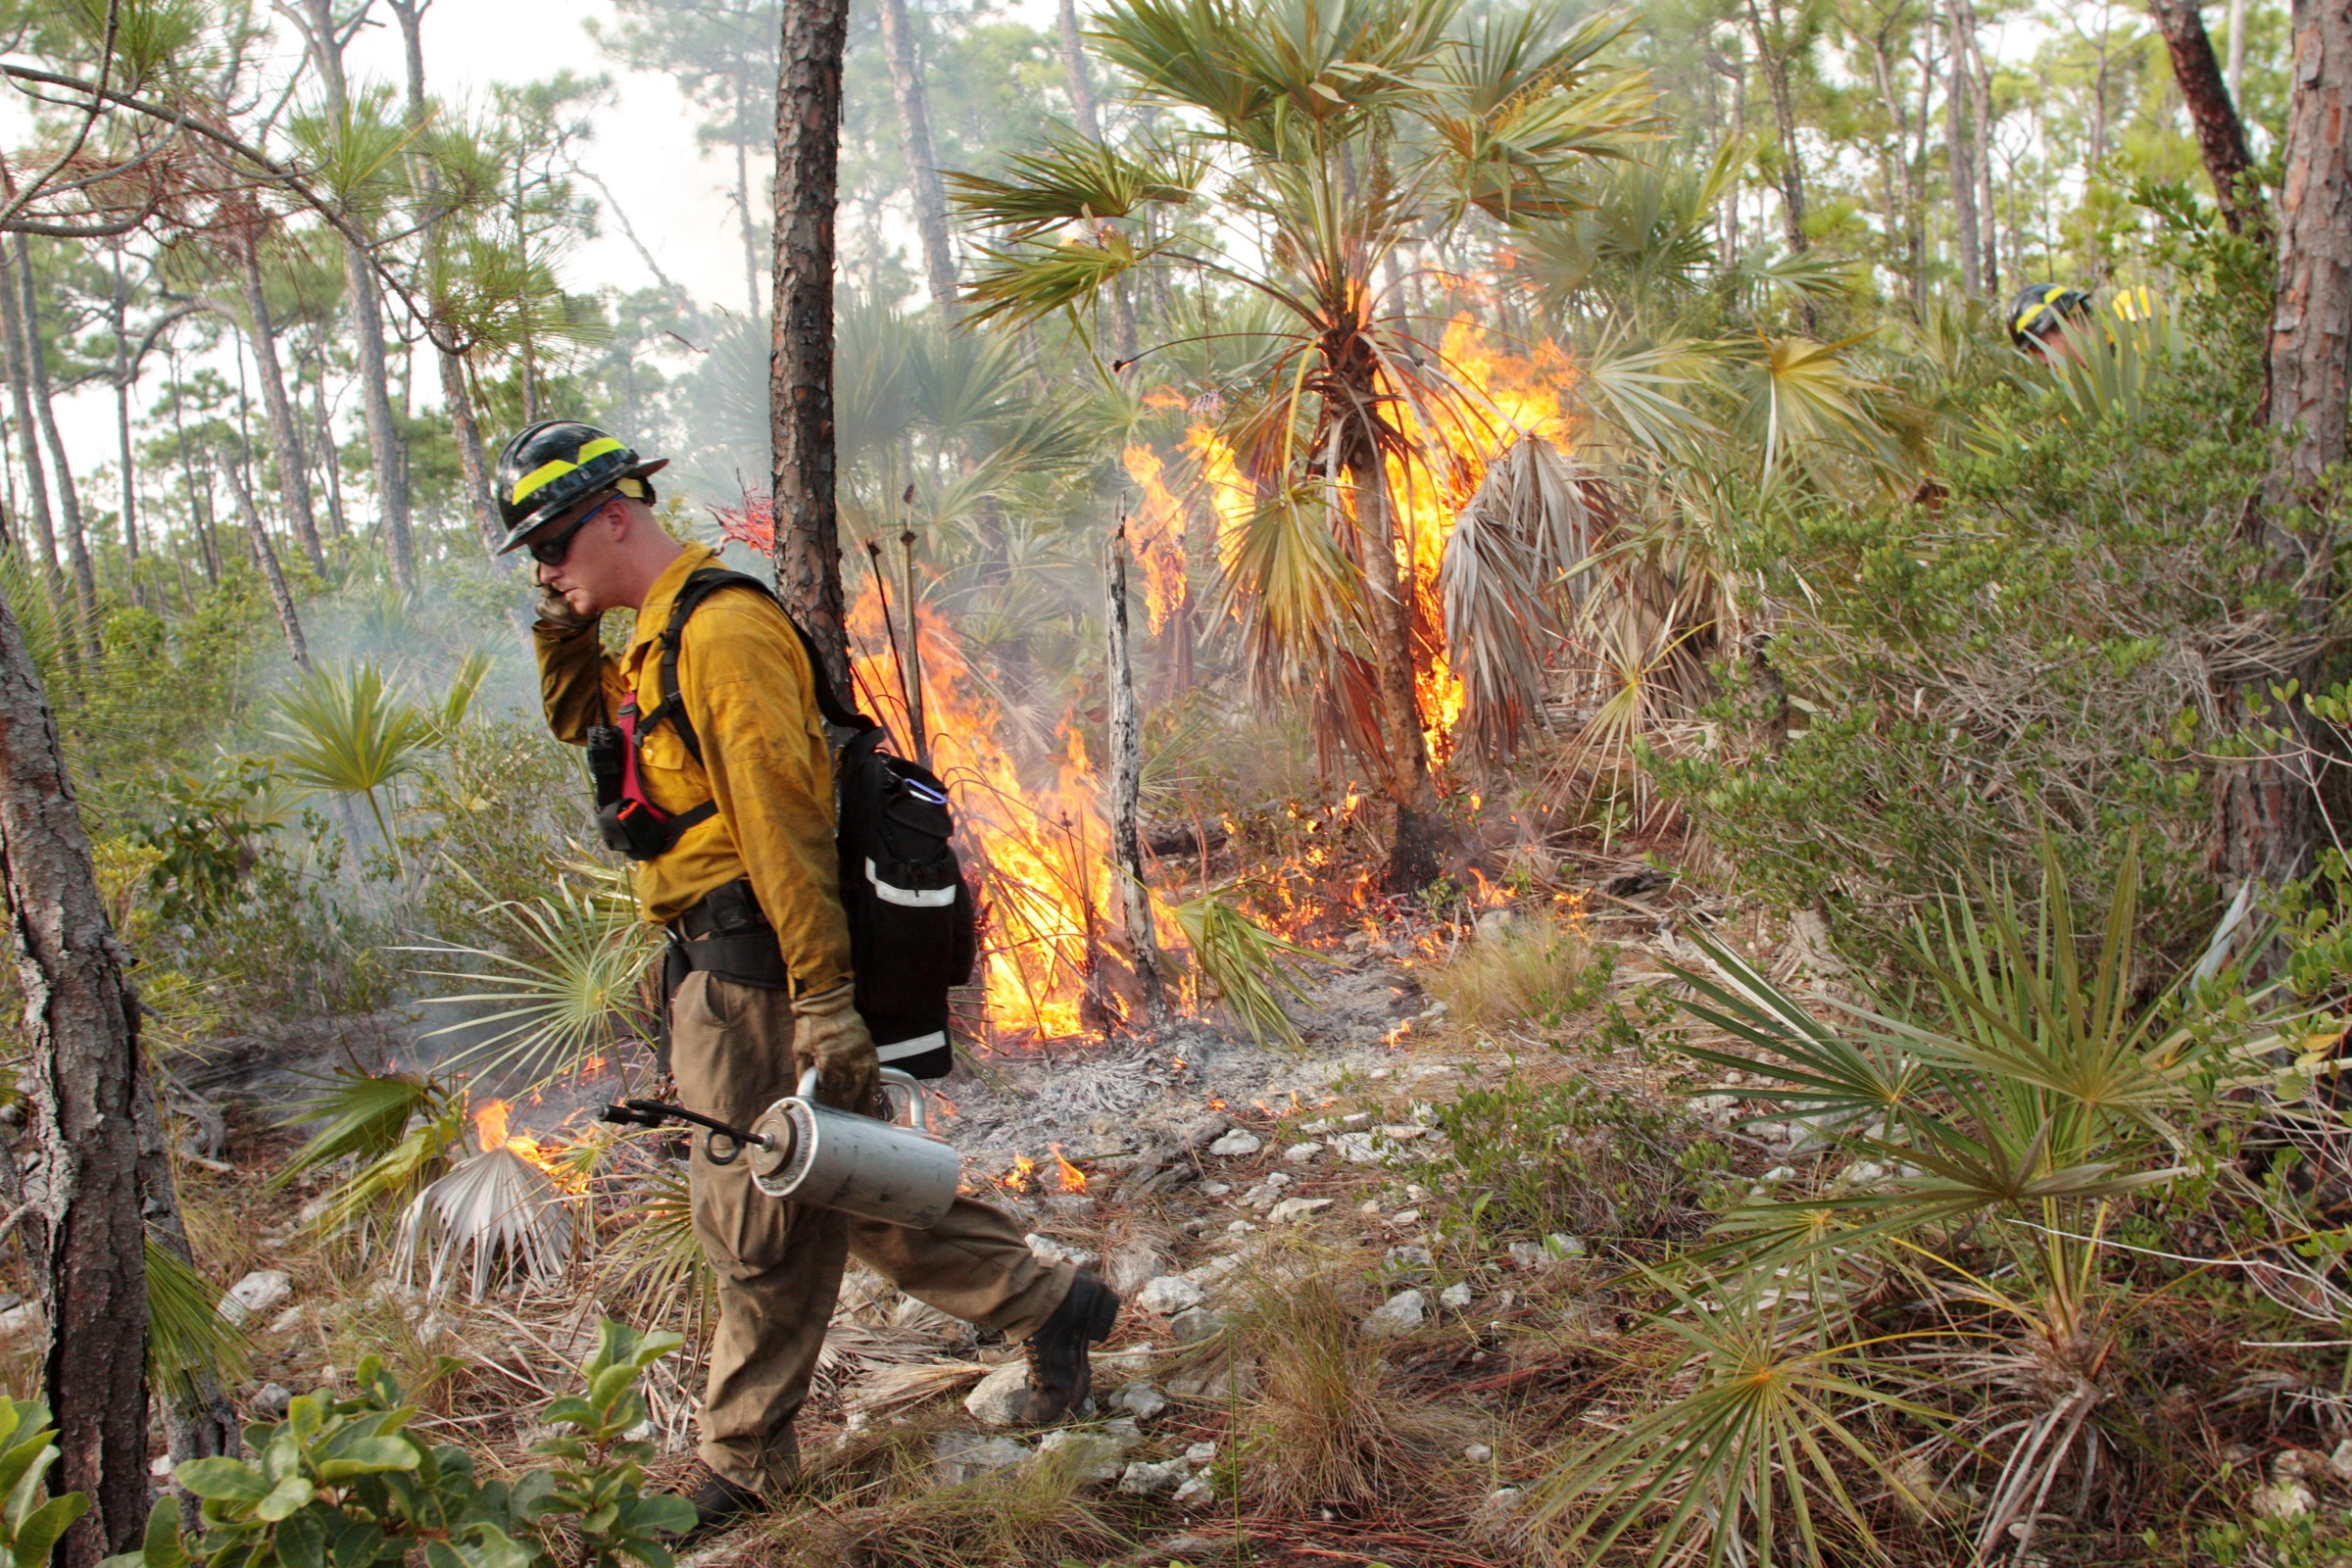 A firefighter ignites a prescribed burn in the pine rocklands of South Florida as a means of restoring one of the natural forces that has shaped this ecosystem for centuries. Photograph by Chad Anderson